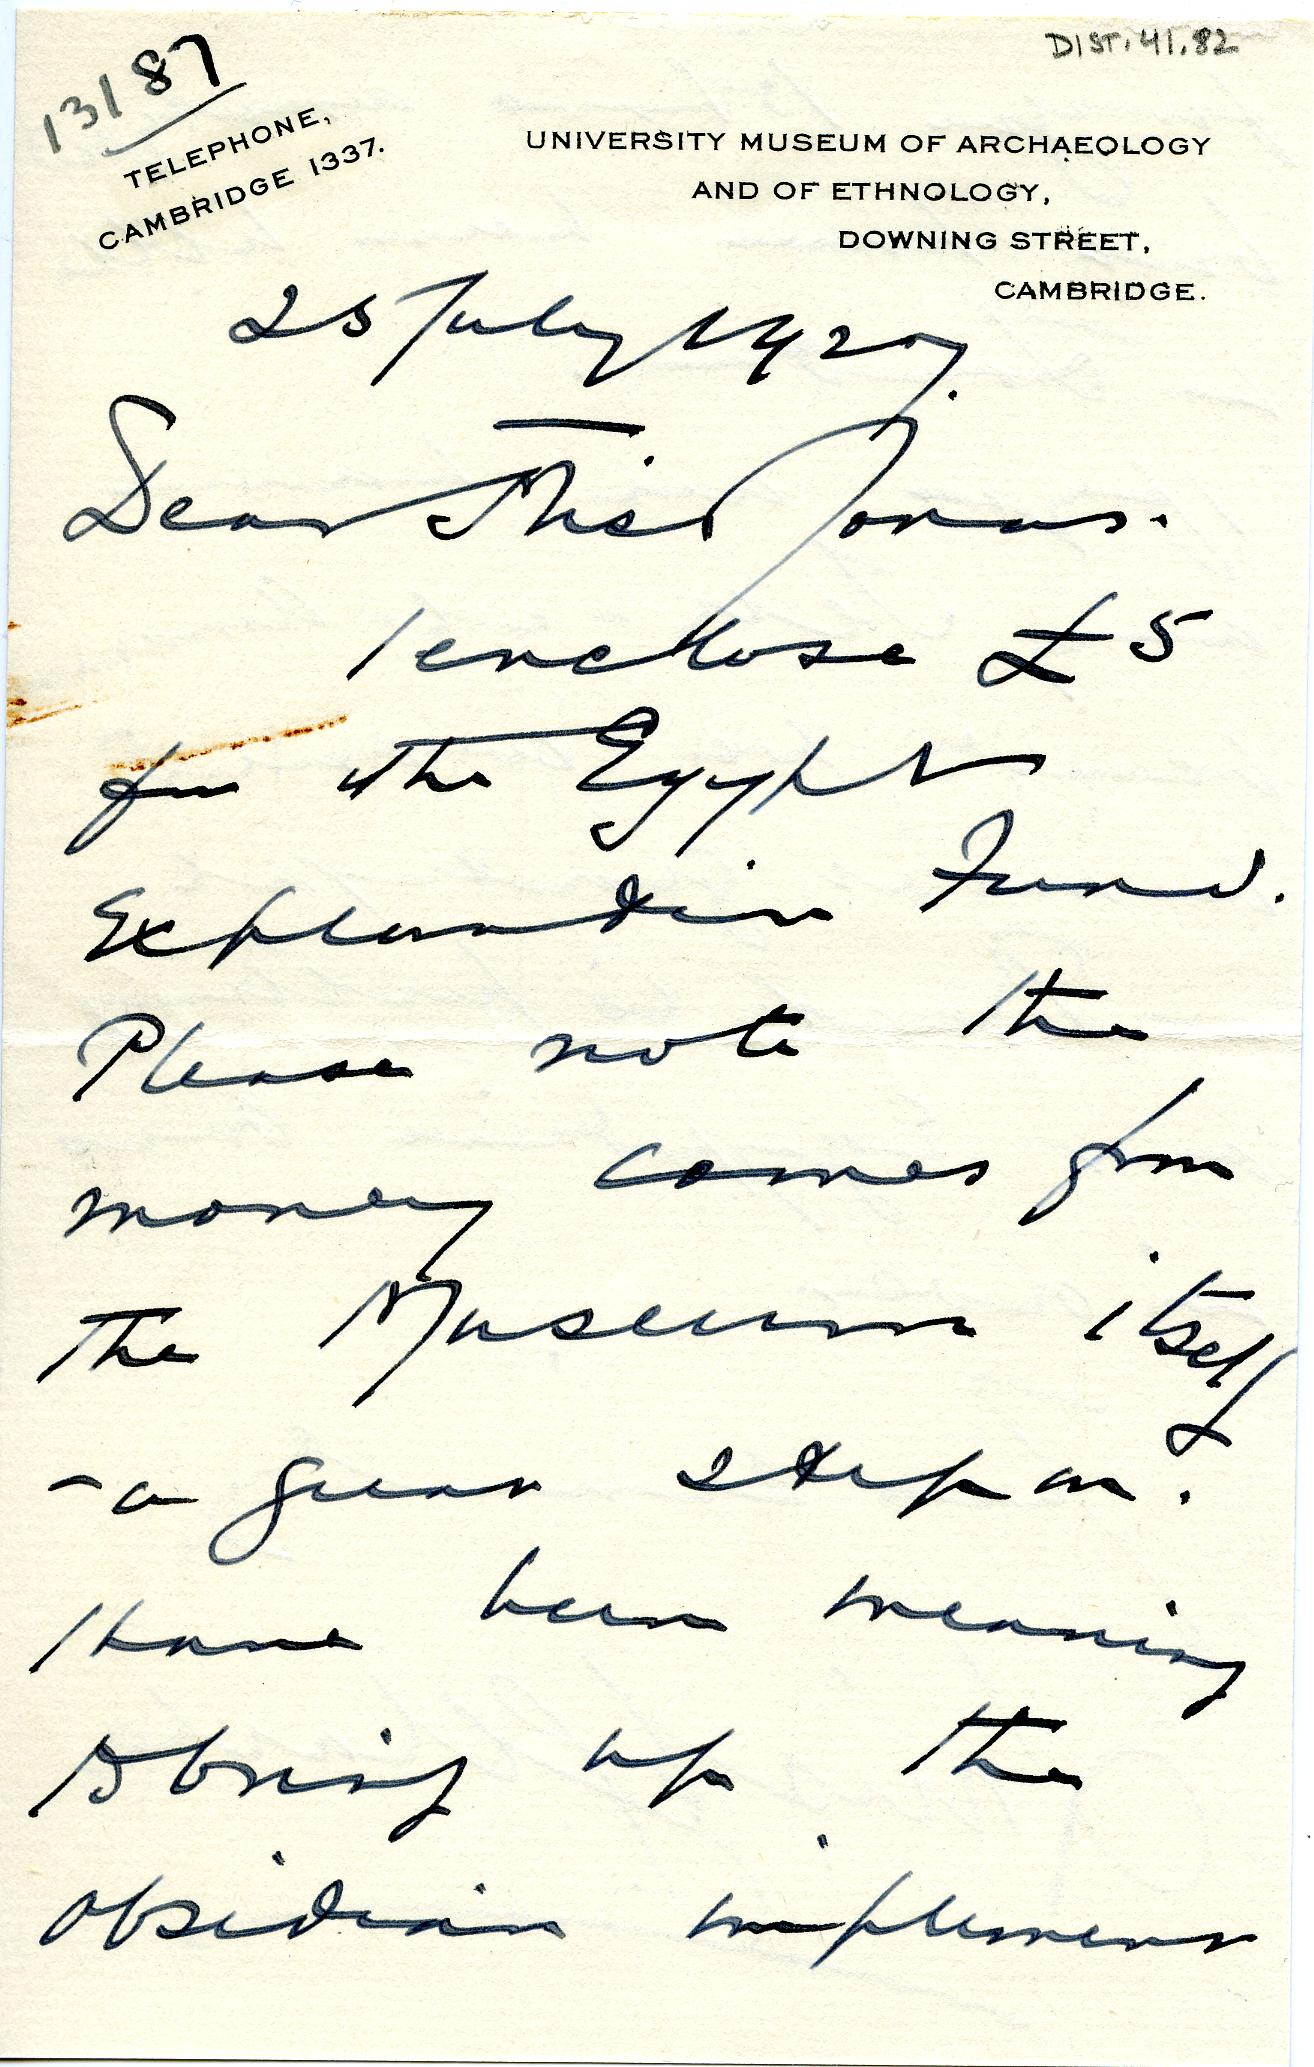 1922-76 Miscellaneous correspondence with museums DIST.41.82a